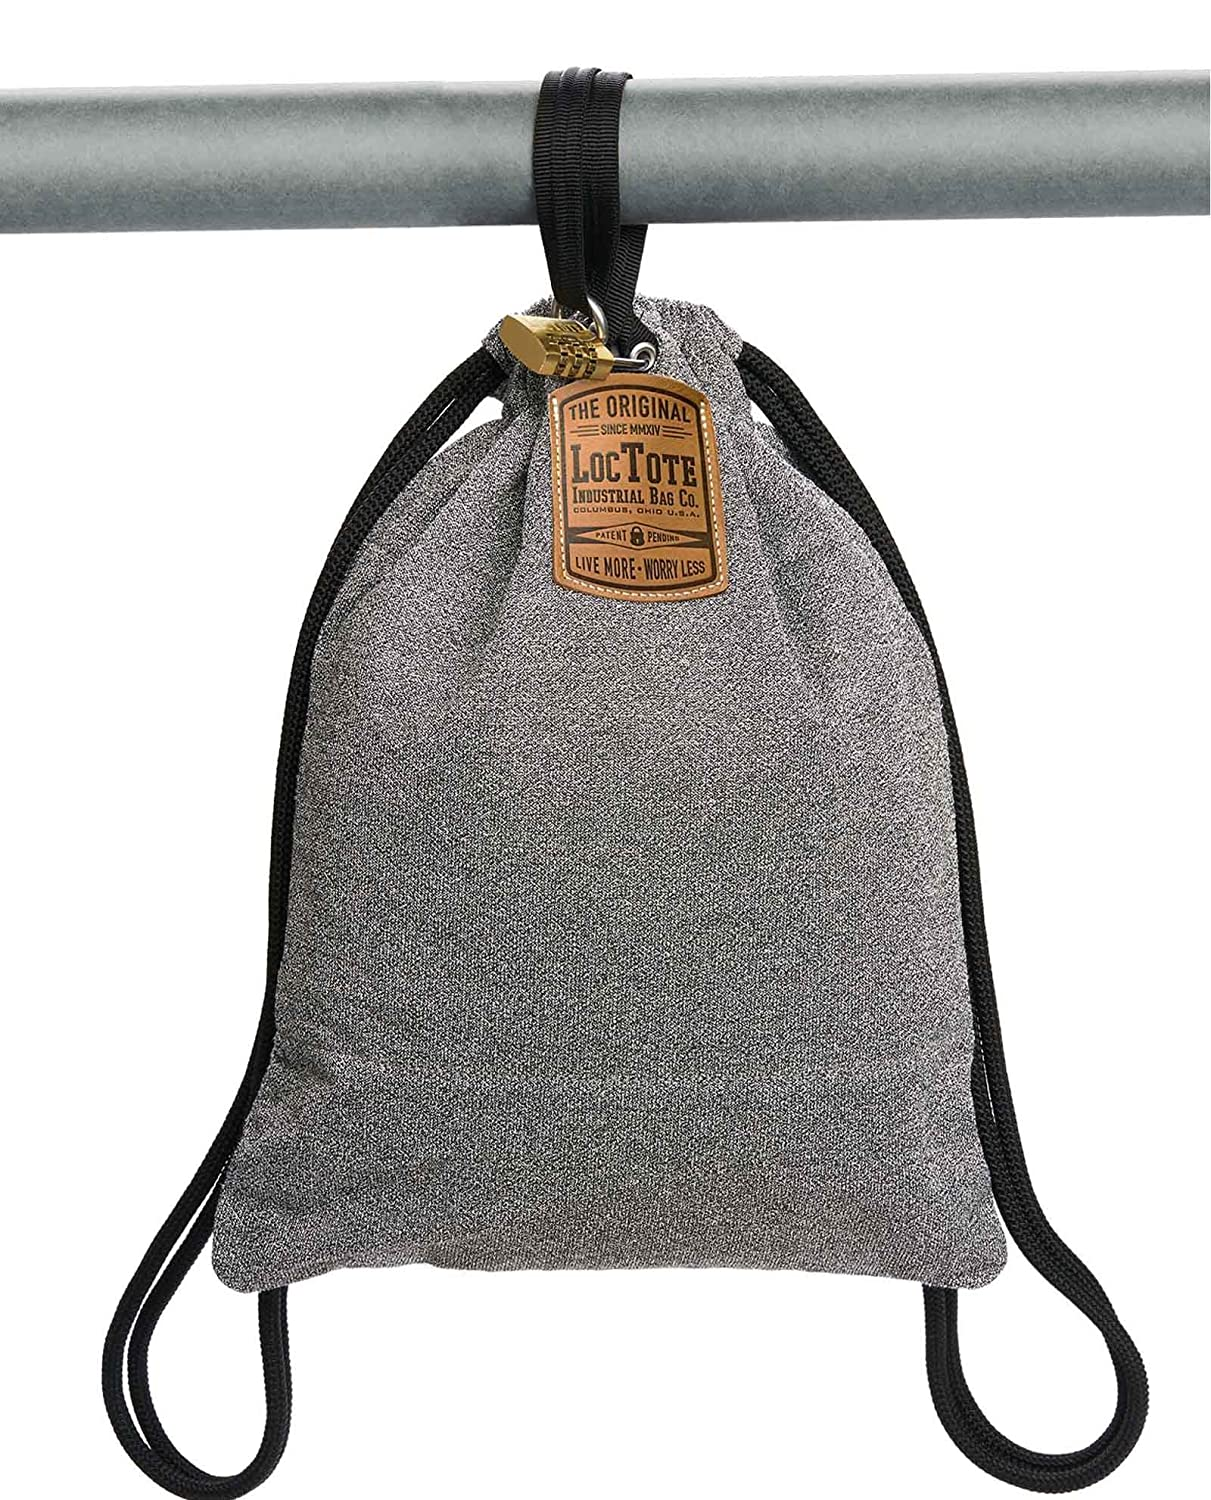 6b114a664828 LOCTOTE Flak Sack - The Original Theft-Resistant Drawstring Backpack |  Anti-theft | Theft-Proof Travel Backpack | Lockable | Slash-Resistant